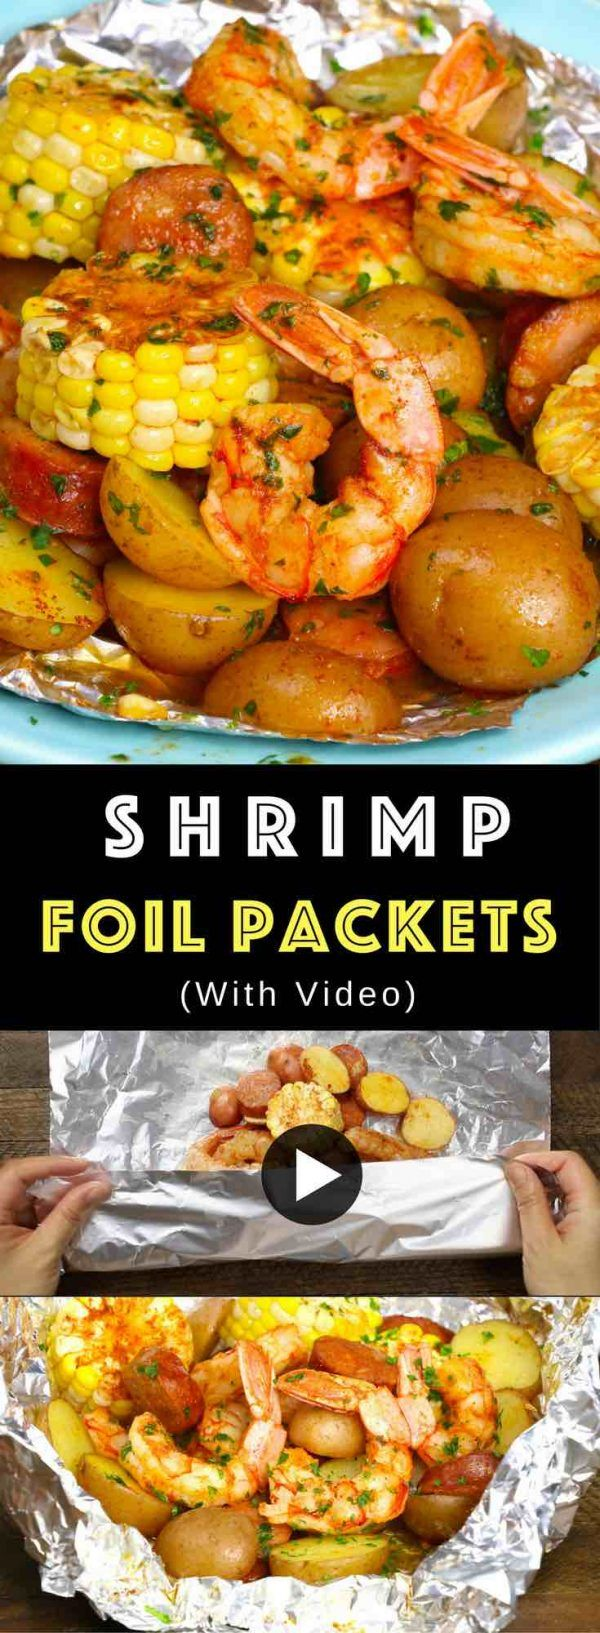 Shrimp Foil Packets (with Video) - TipBuzz